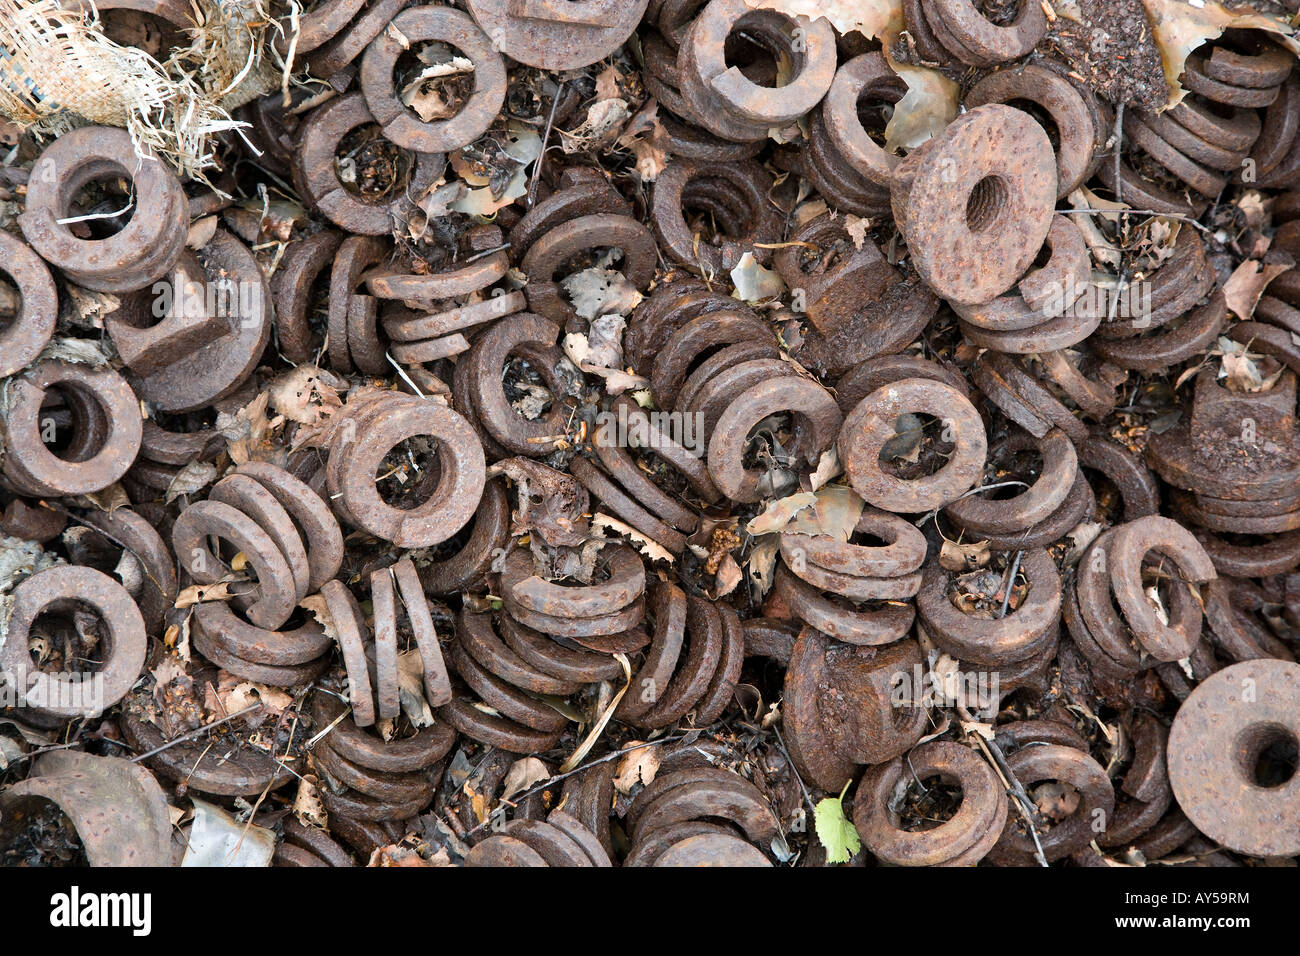 Heap old washers Tanfield Preserved Coal Board Railway County Durham North East England - Stock Image